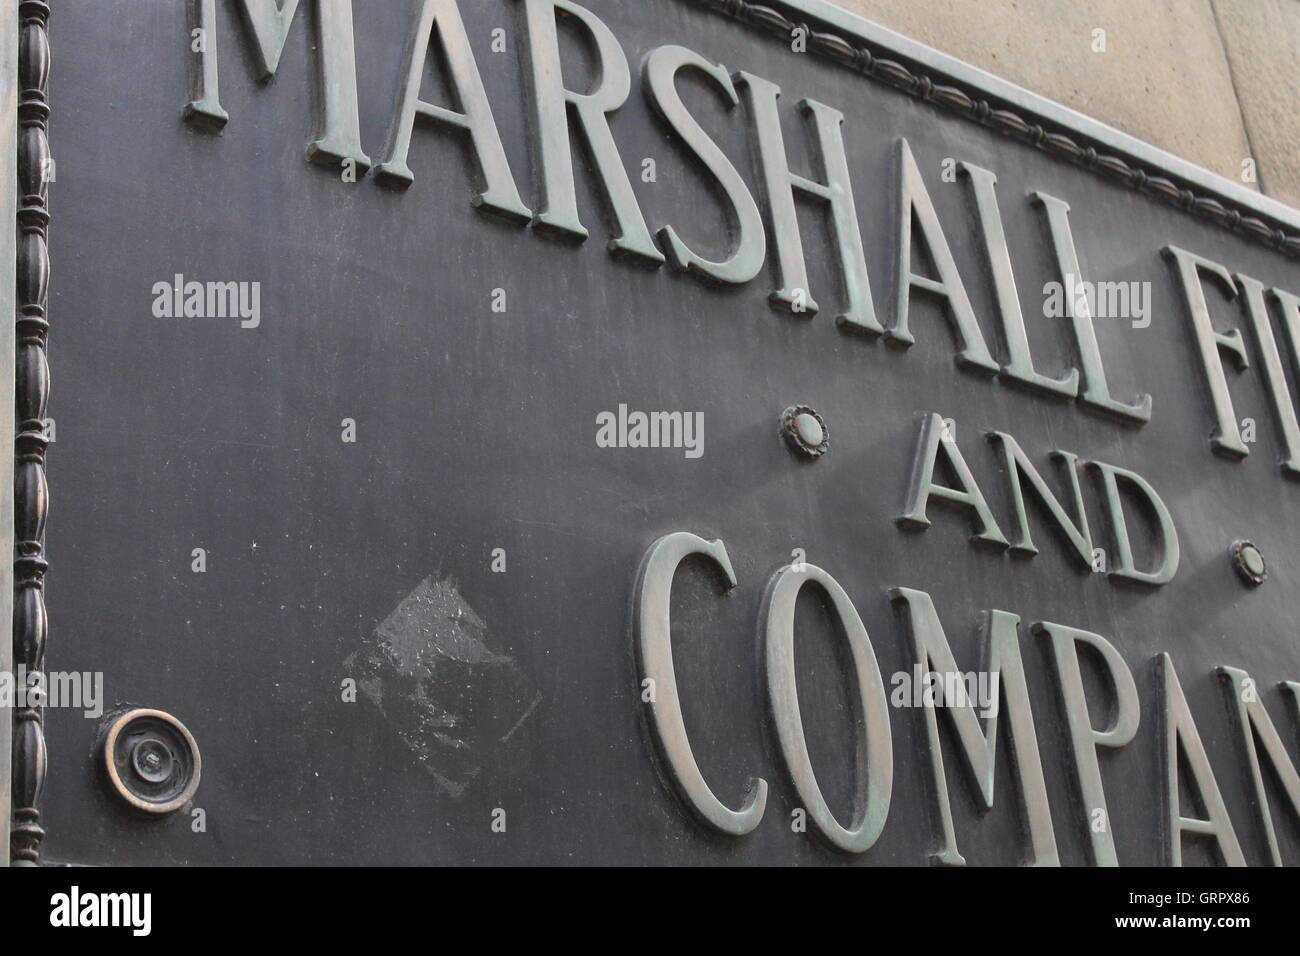 Marshall Field's plaque on the outside of what used to be Marshall Fields (now Macy's) in Chicago IL - Stock Image